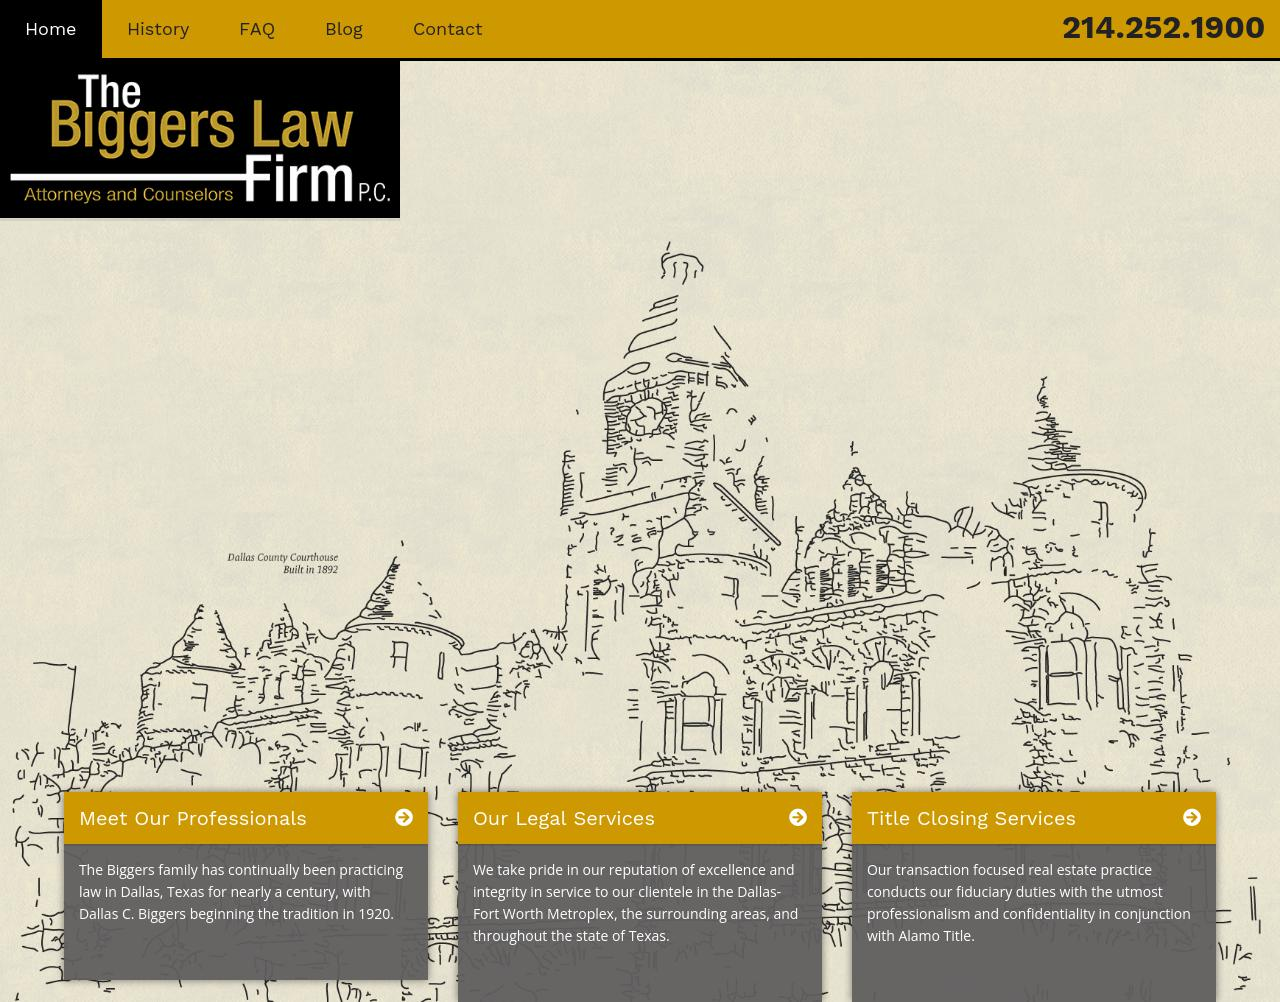 The Biggers Law Firm, P.C. - Dallas TX Lawyers